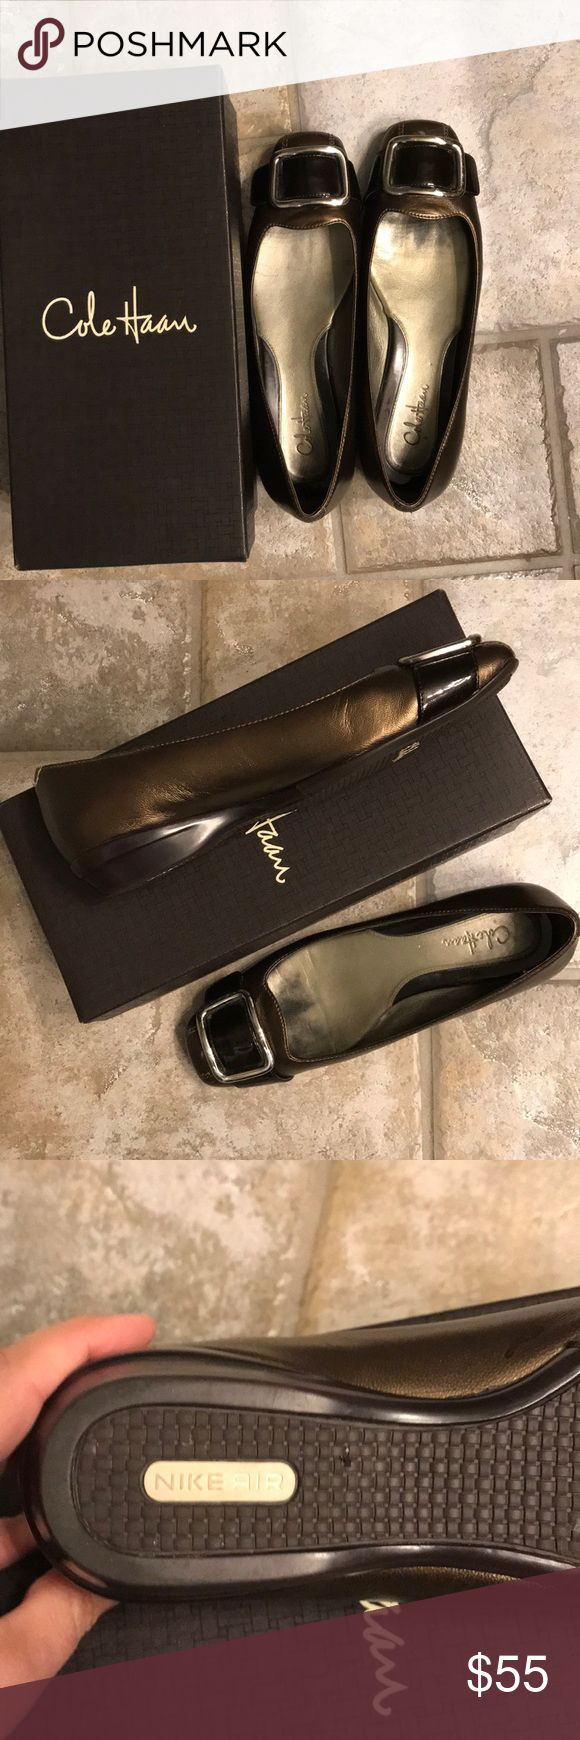 Cole haan air genie buckle brown metallic Sold with shoe bag and box. Great Cole haan wig Nike air soles. Brown metallic buckle shoe with brown patent strap at toe Cole Haan Shoes Flats & Loafers